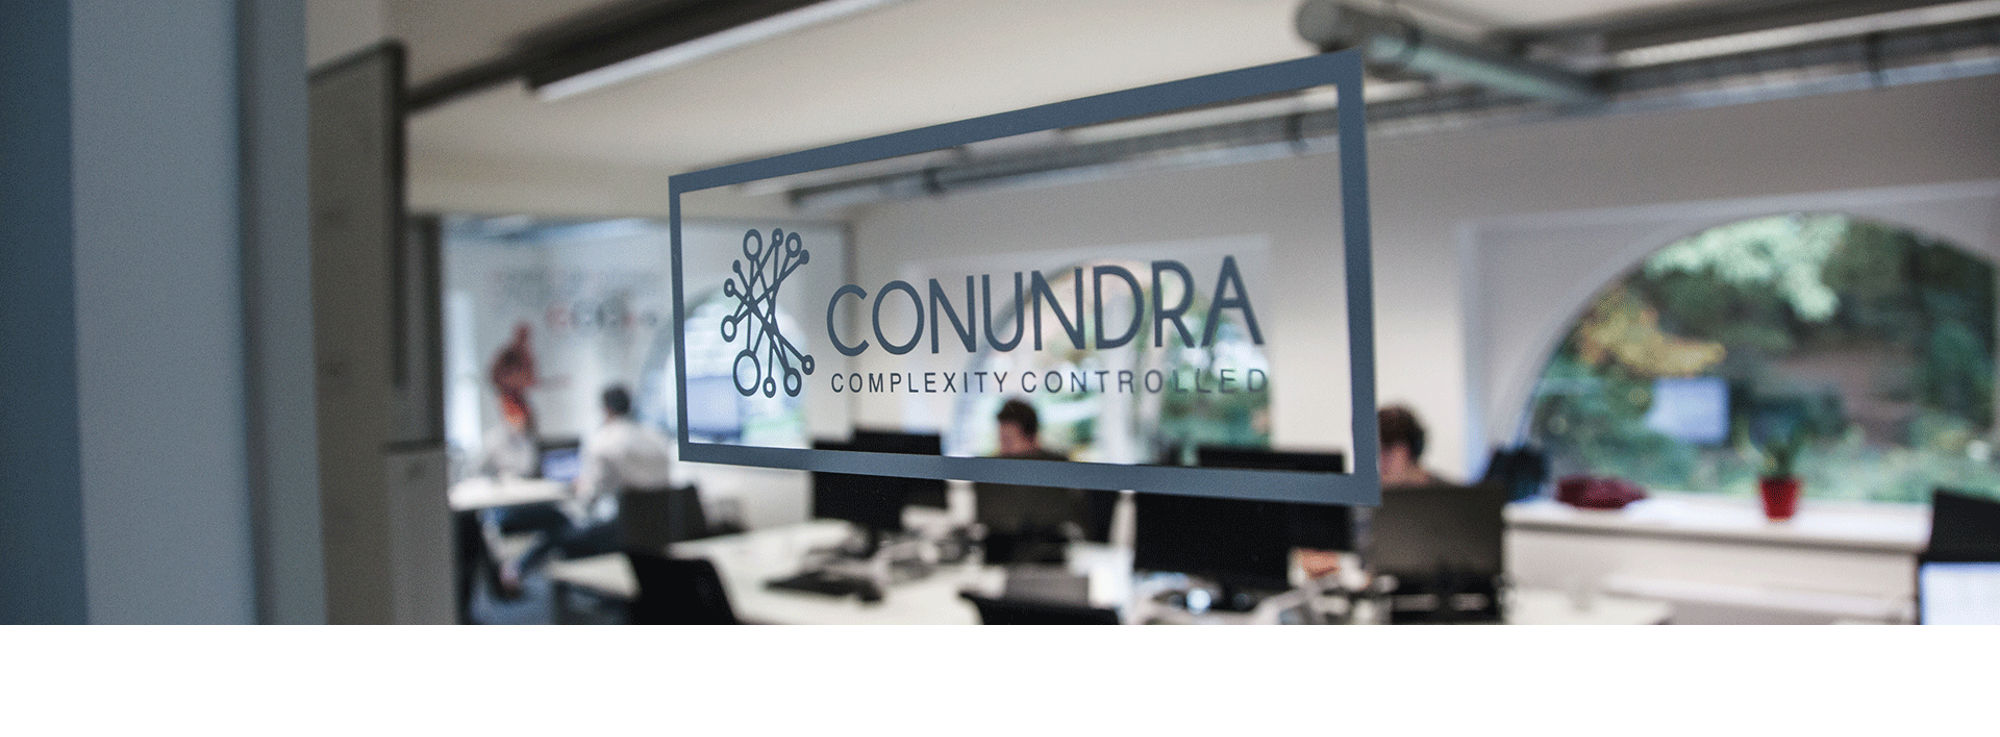 conundra-office-lowerband.png